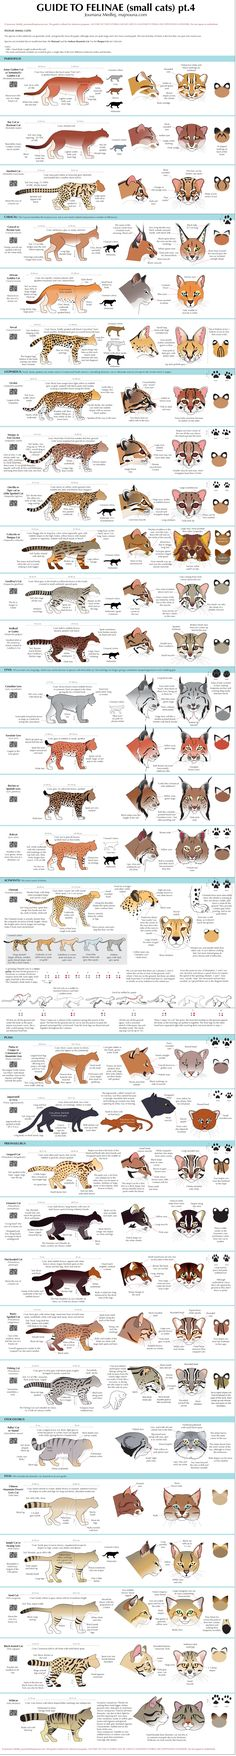 Guide to Little Cats by `majnouna on deviantART ✤ || CHARACTER DESIGN REFERENCES | 解剖 • علم التشريح • анатомия • 解剖学 • anatómia • एनाटॉमी • ανατομία • 해부 • Find more at https://www.facebook.com/CharacterDesignReferences & http://www.pinterest.com/characterdesigh if you're looking for: #anatomy #anatomie #anatomia #anatomía #anatomya #anatomija #anatoomia #anatomi #anatomija #animal #creature || ✤